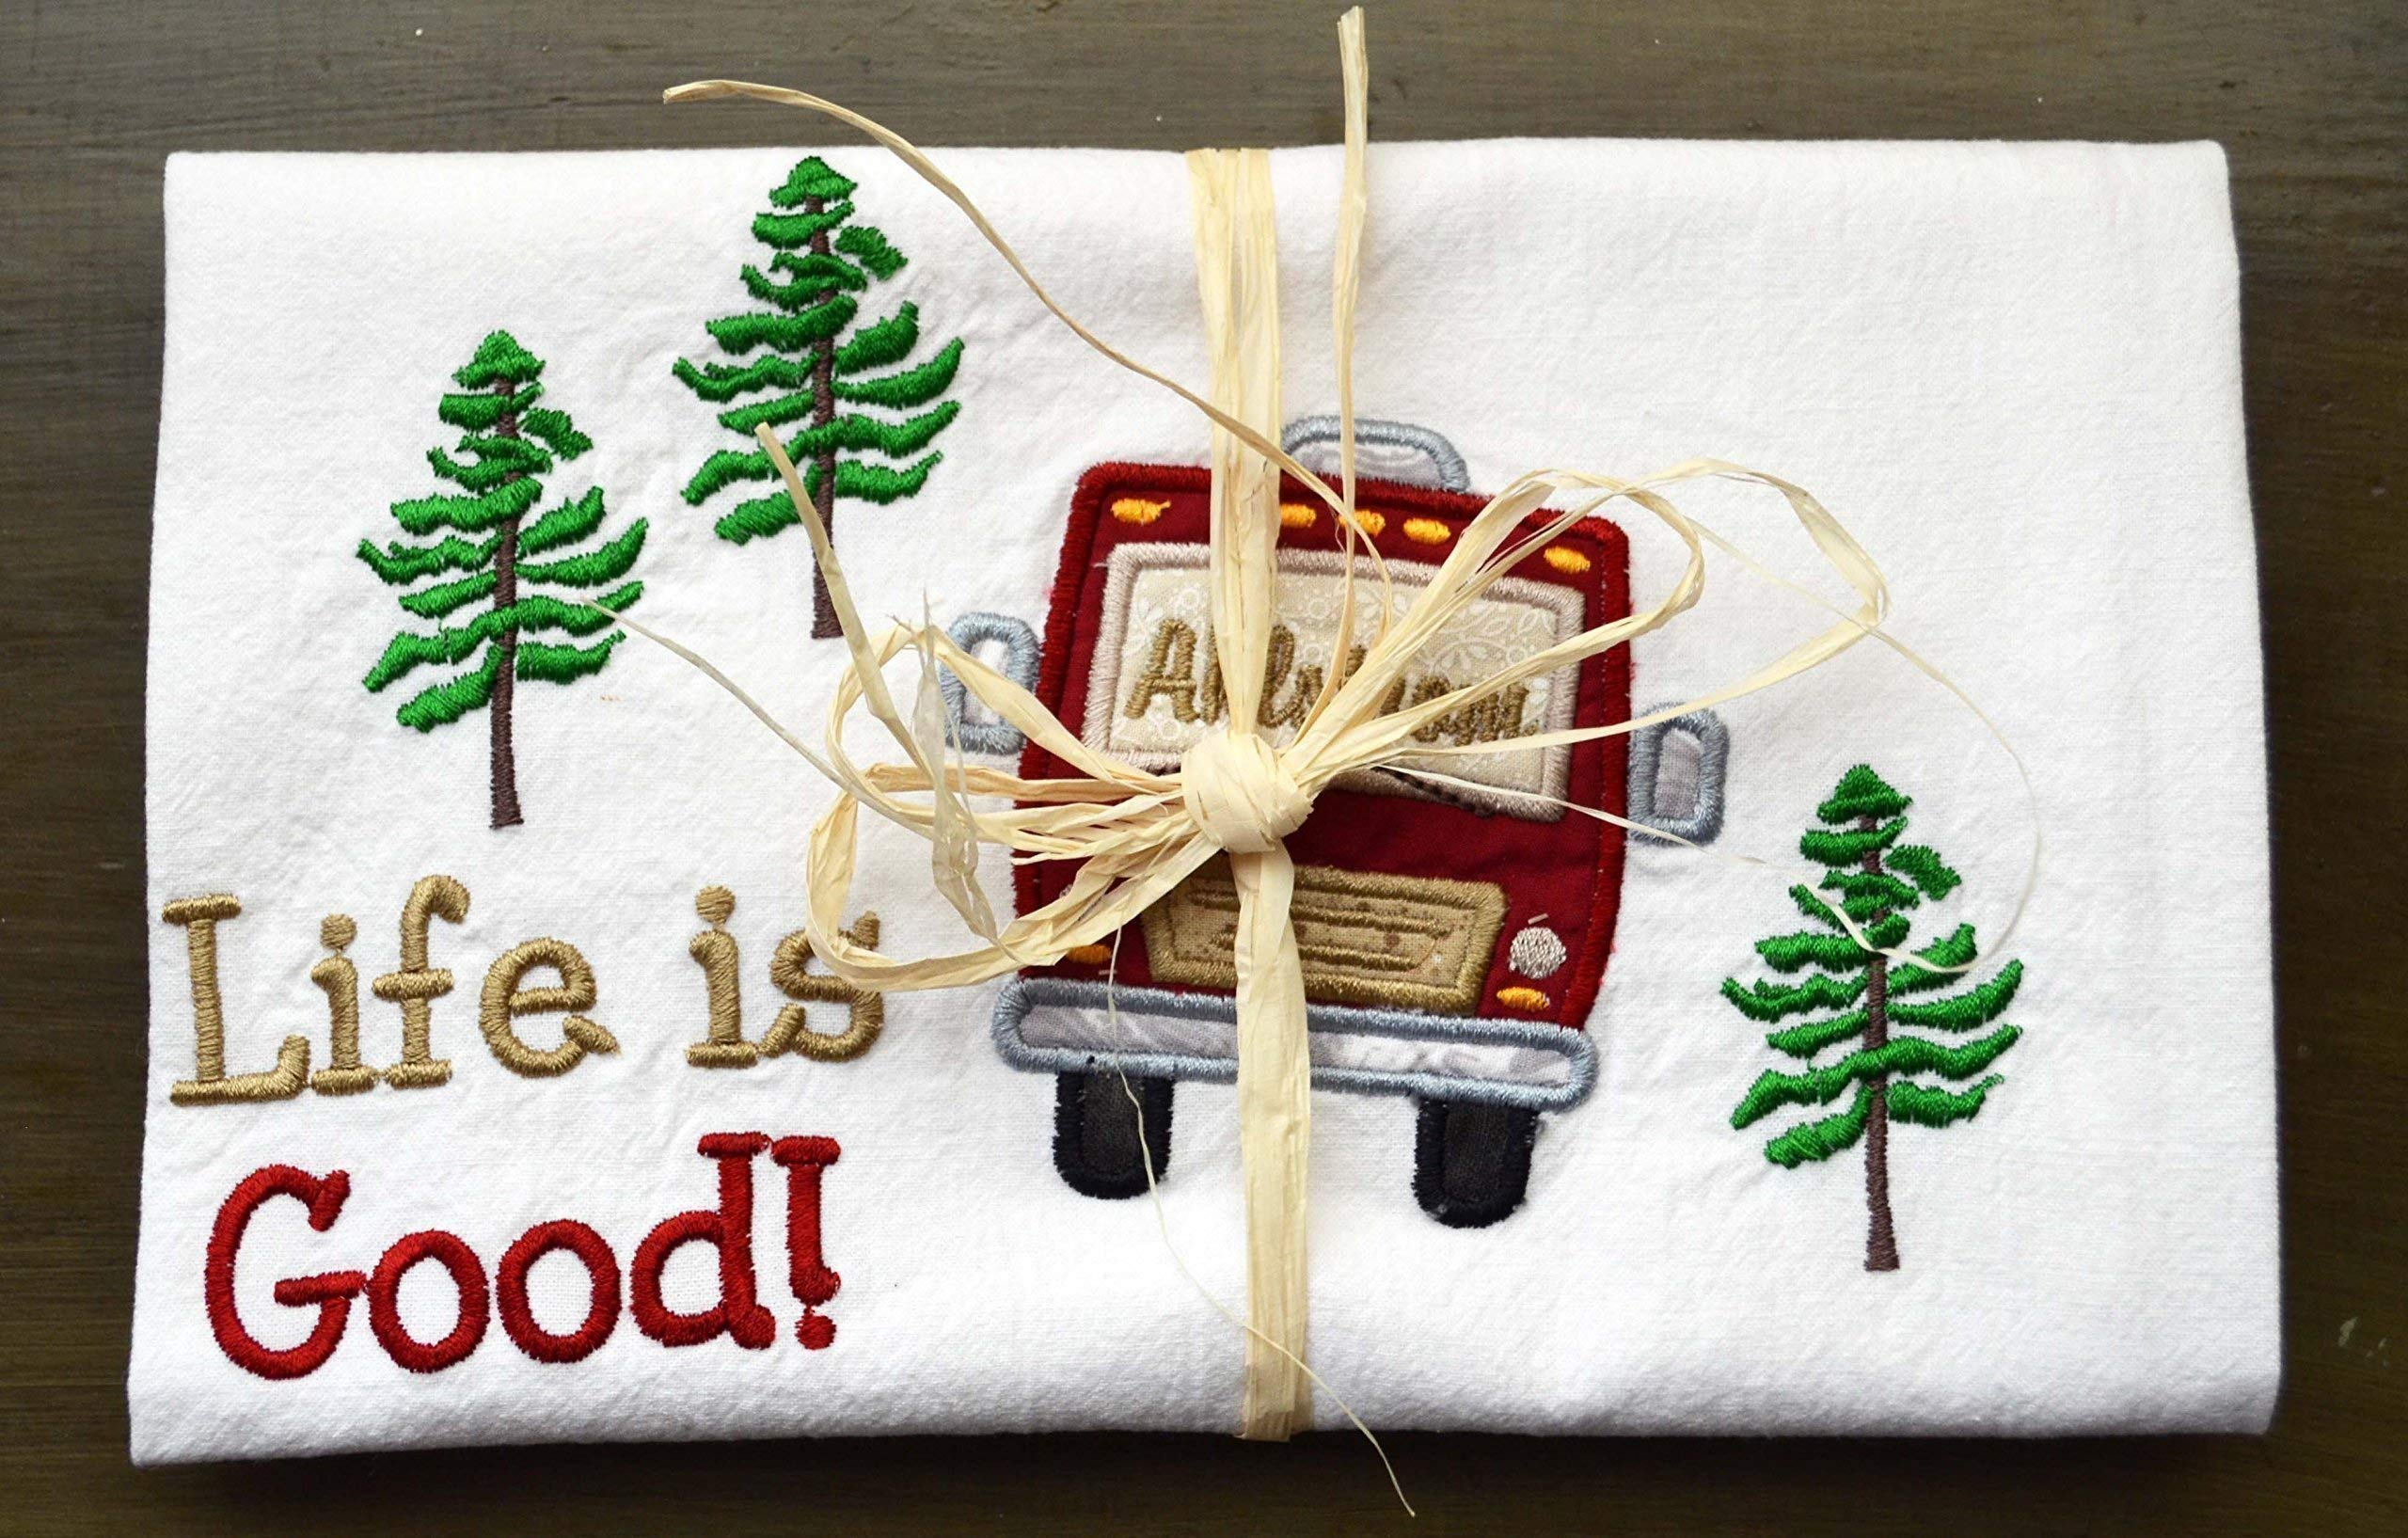 Custom Dish Towel, Camping Gift, RV Decor, Camping Dish Towel, Glamping, RV Accessories, Flour Sack Towel, RV Gift, Camper Decor, Top Quality, Choice of RV Color, (Option to add name in window) by Embroidery Hut (Image #4)